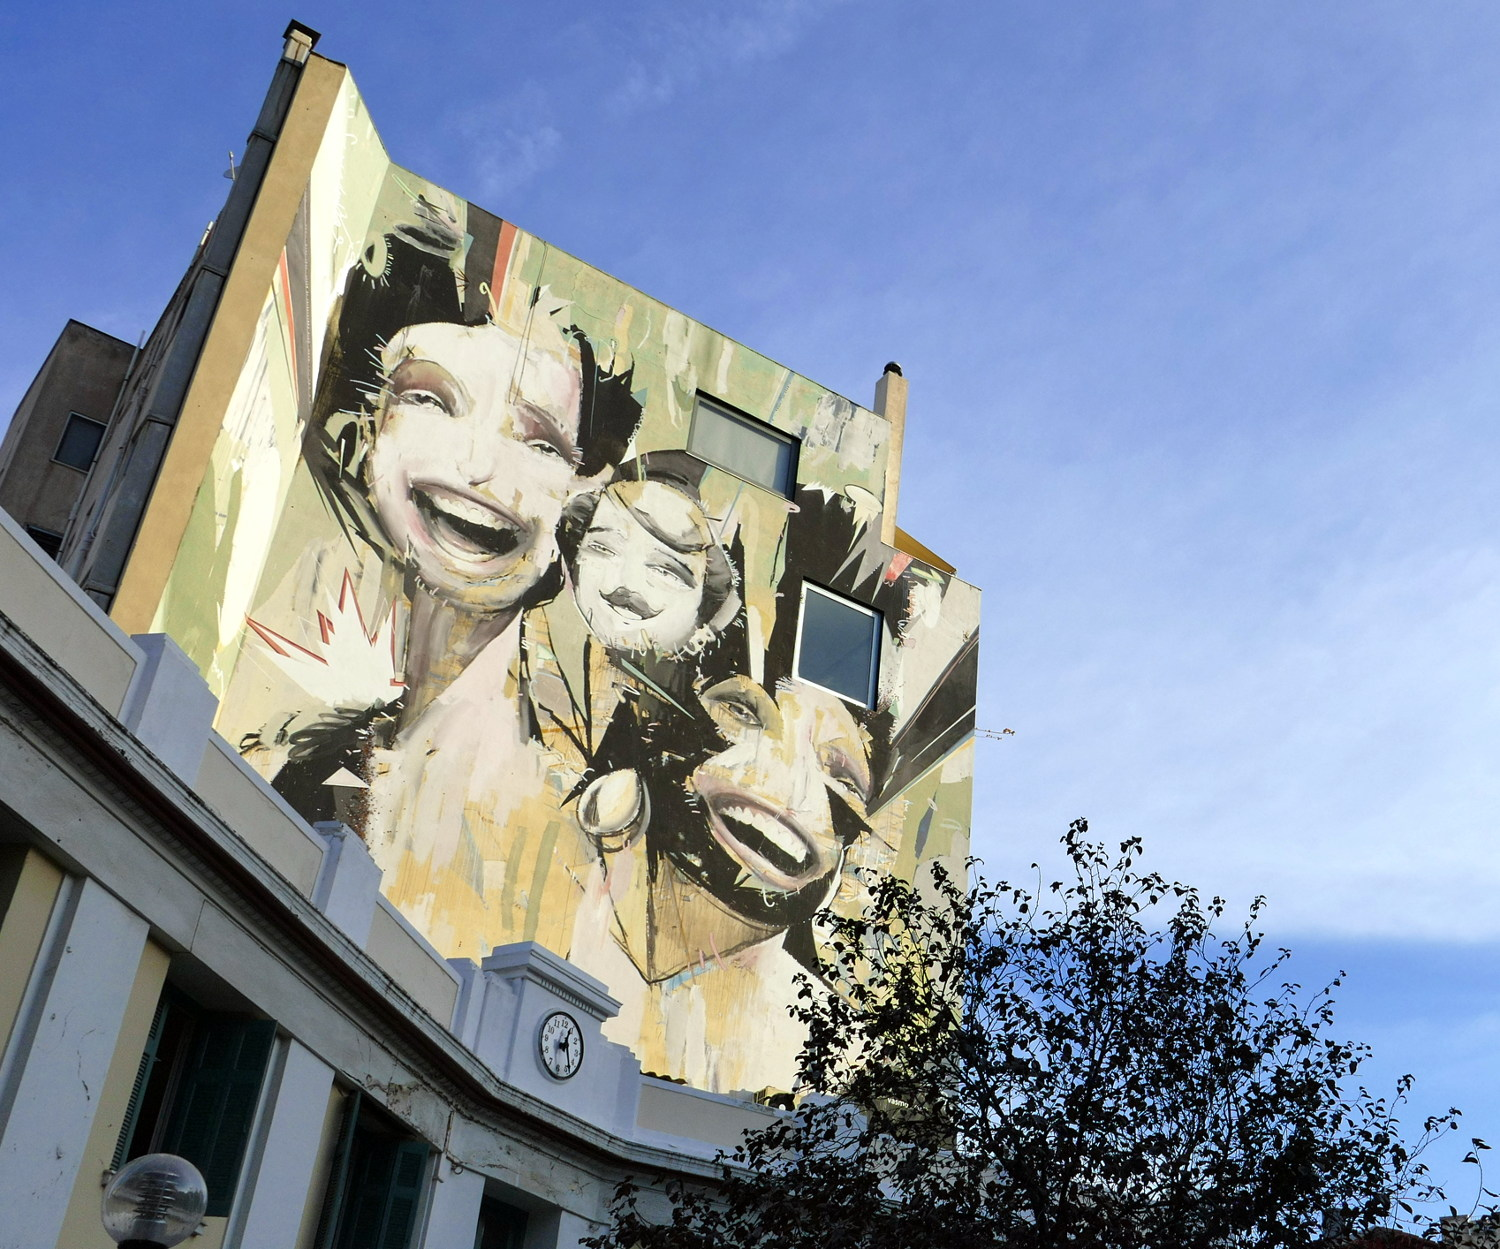 Artist :  Alexandros Vasmoulakis   Location : Can be seen from the square at the center of Platia Iroon, Athens, Greece